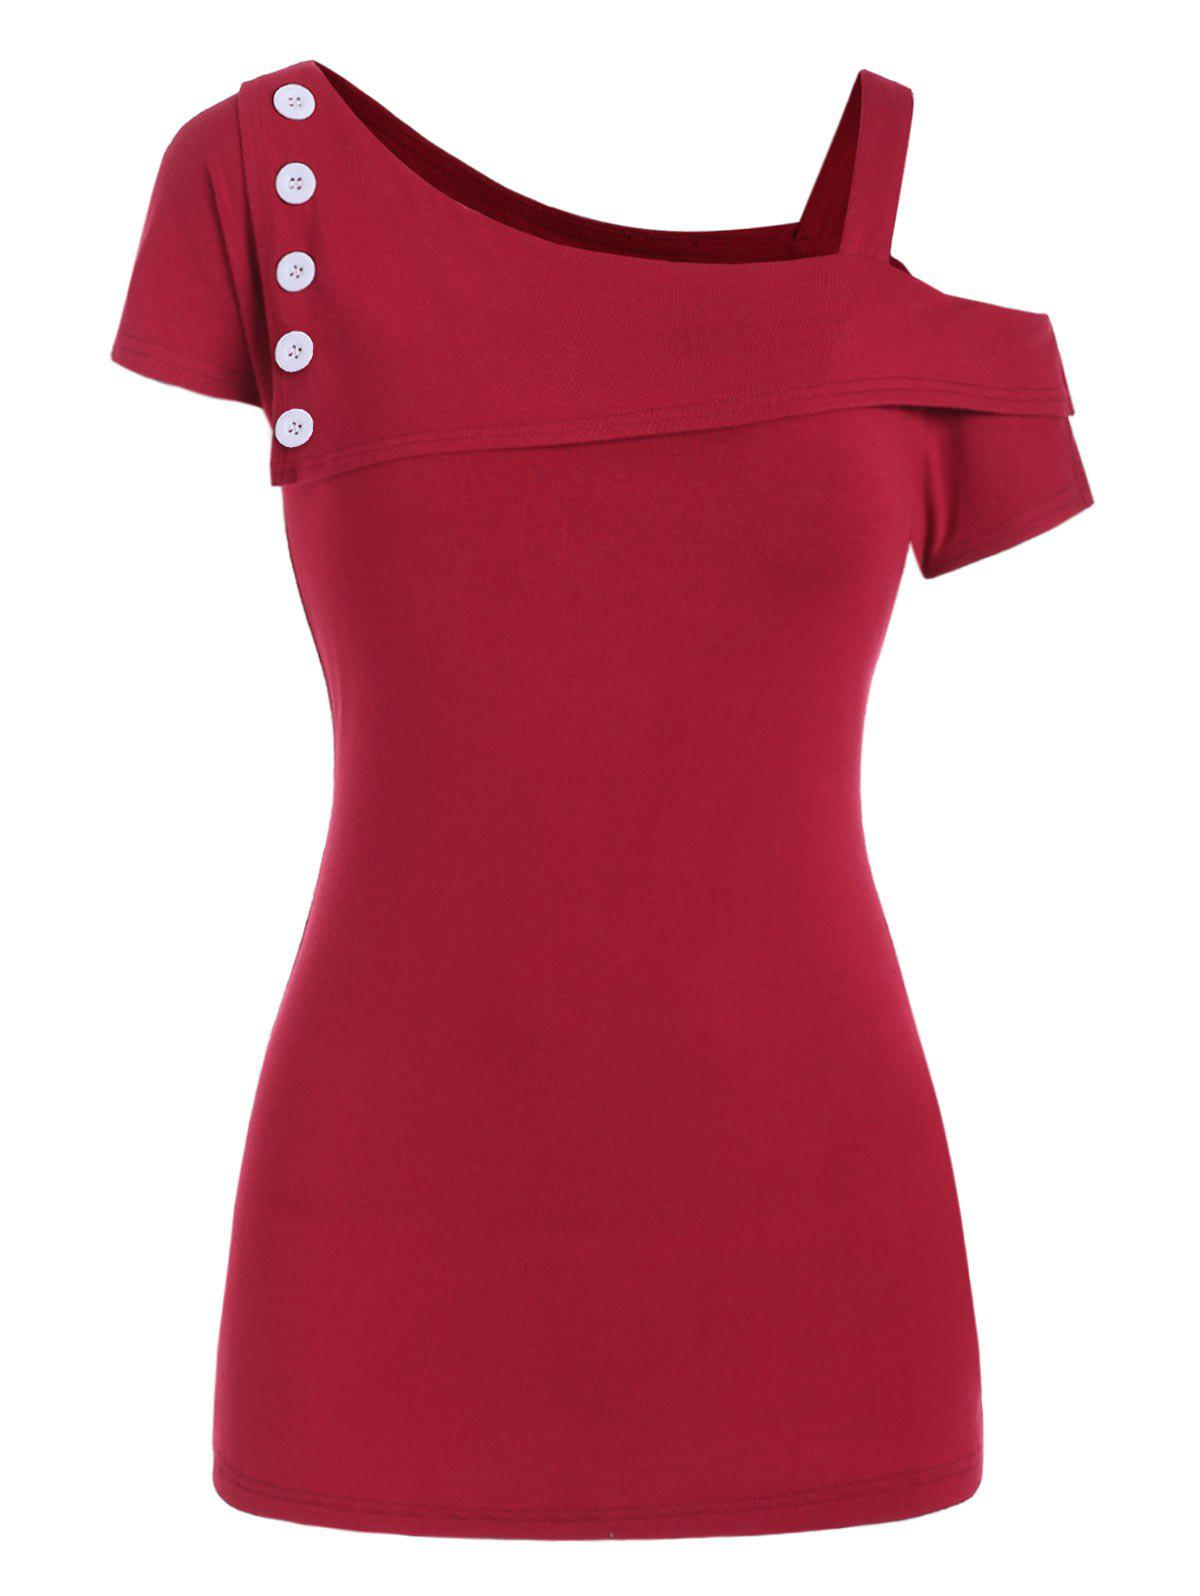 Buttons Skew Neck Solid Tee - CHERRY RED 2XL